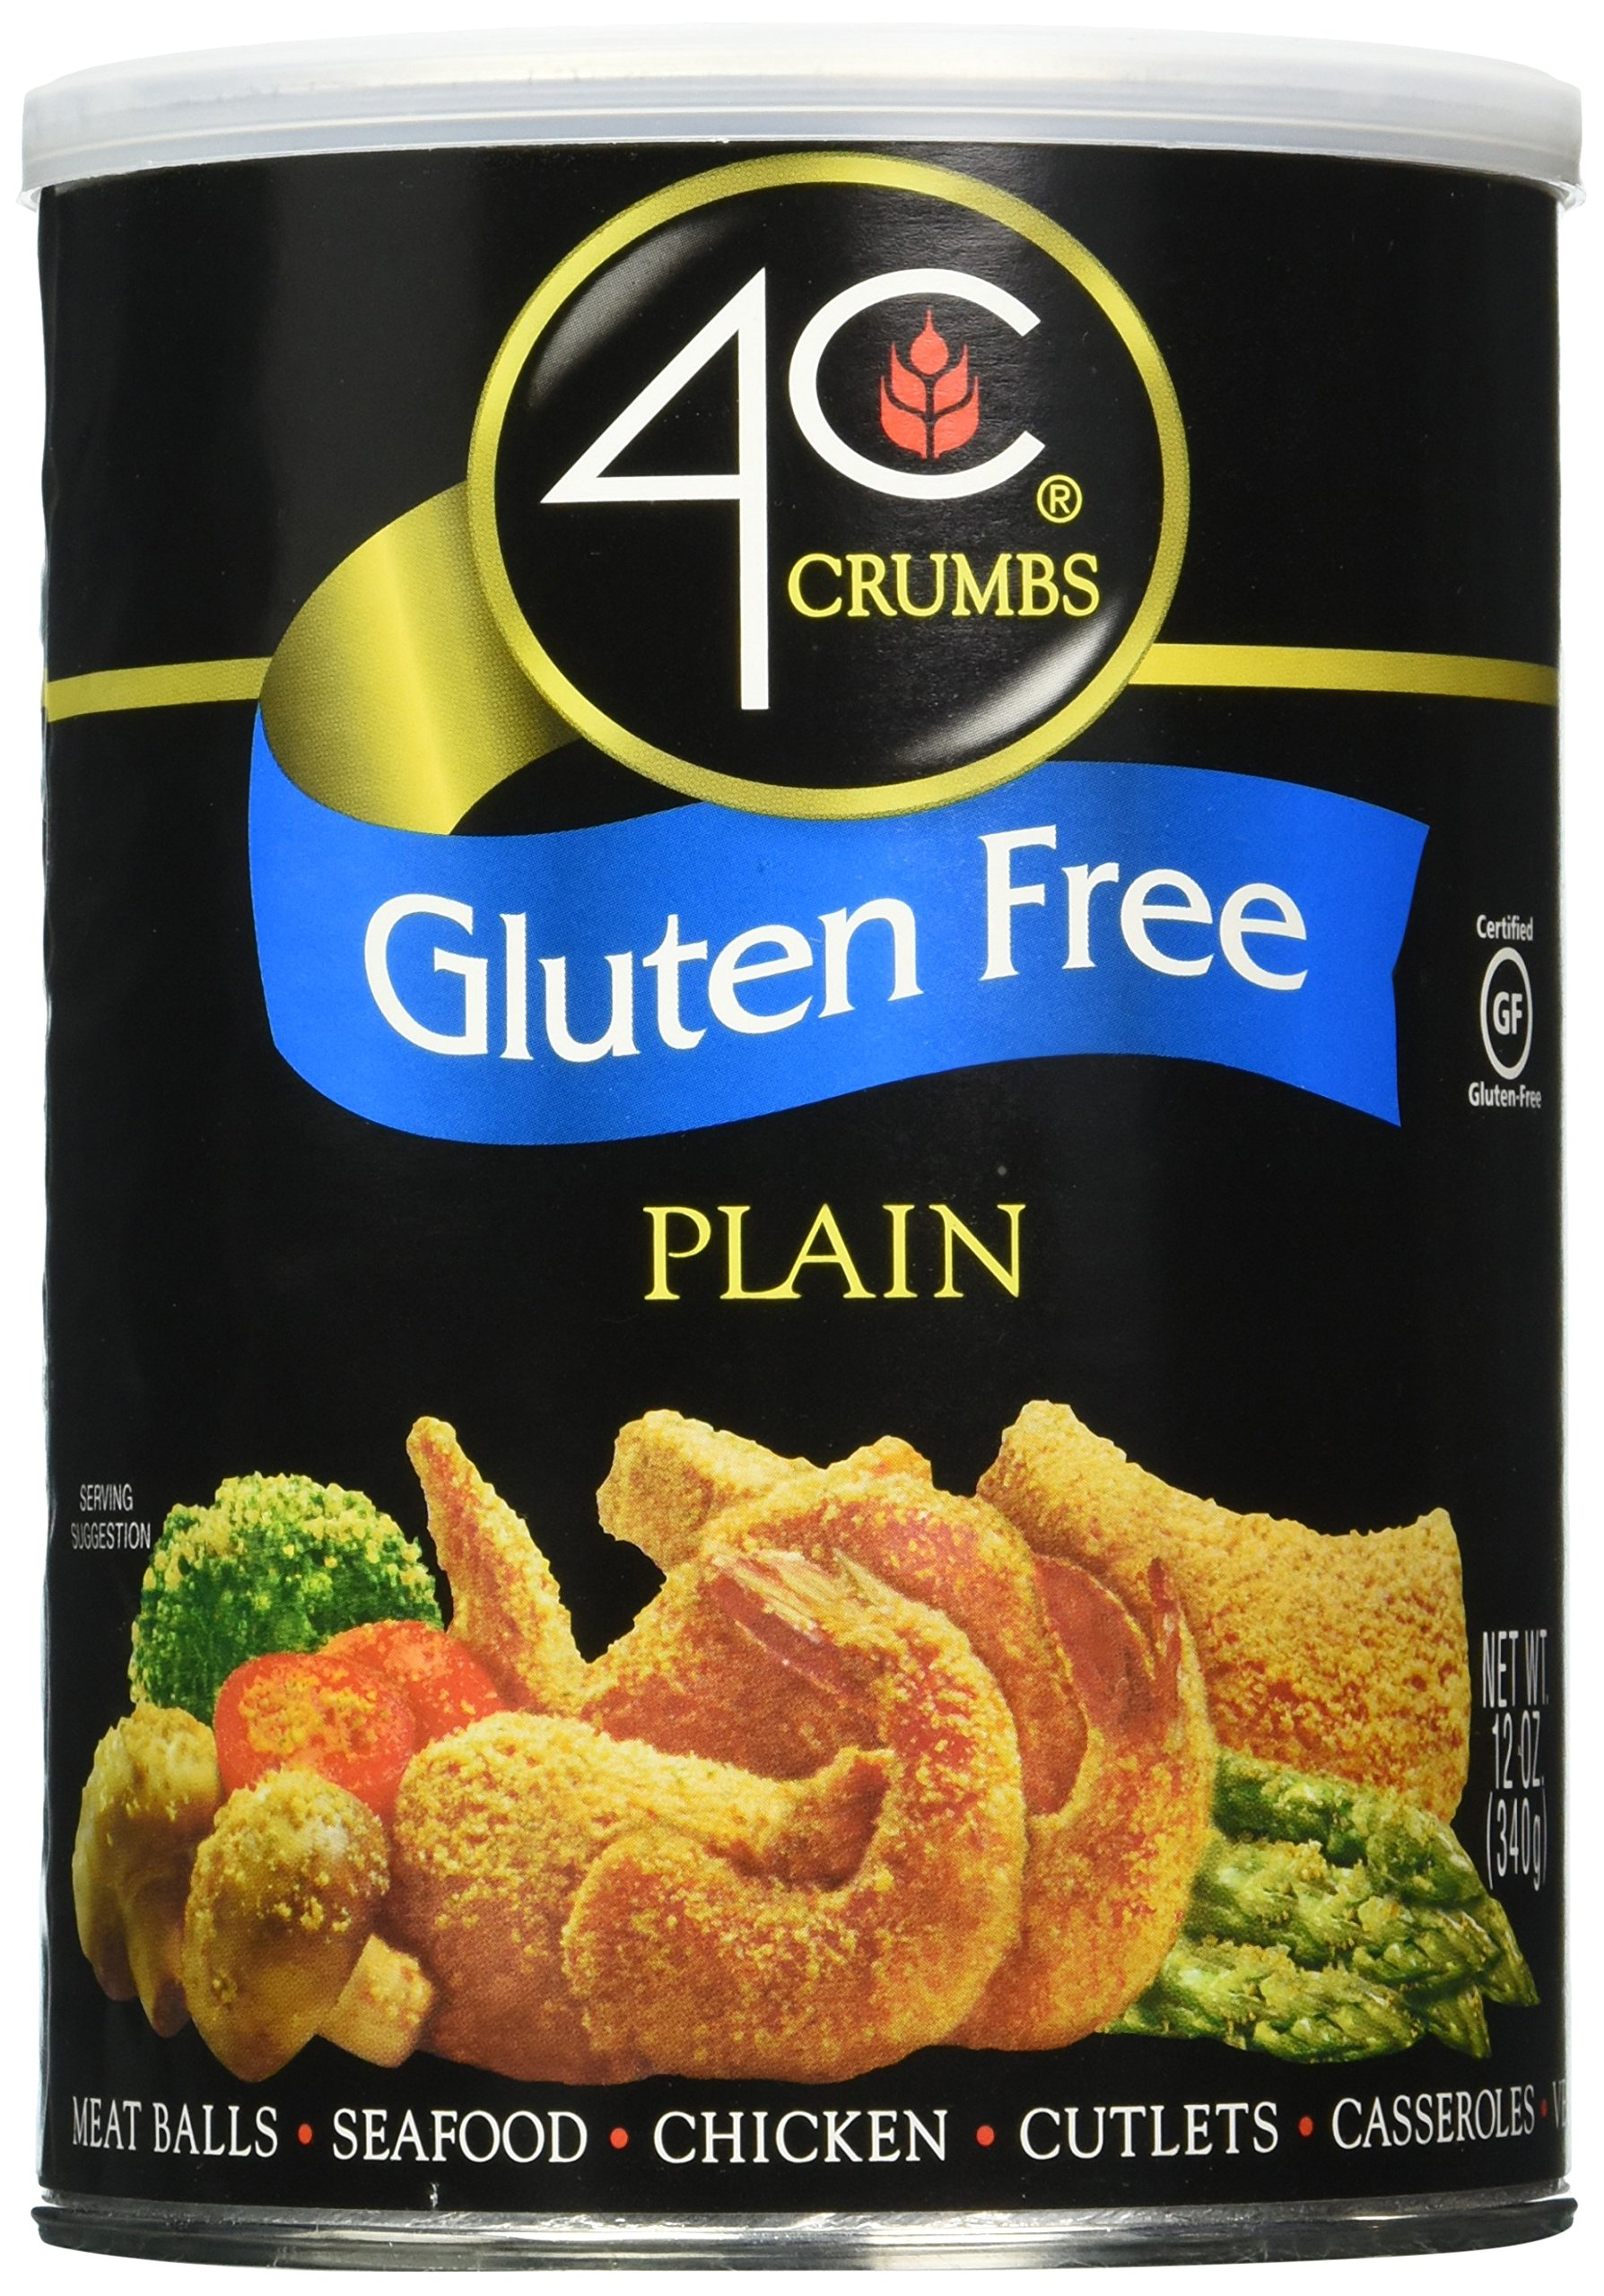 4C Gluten Free Crumbs Plain, 12 Ounce (Pack Of 2)